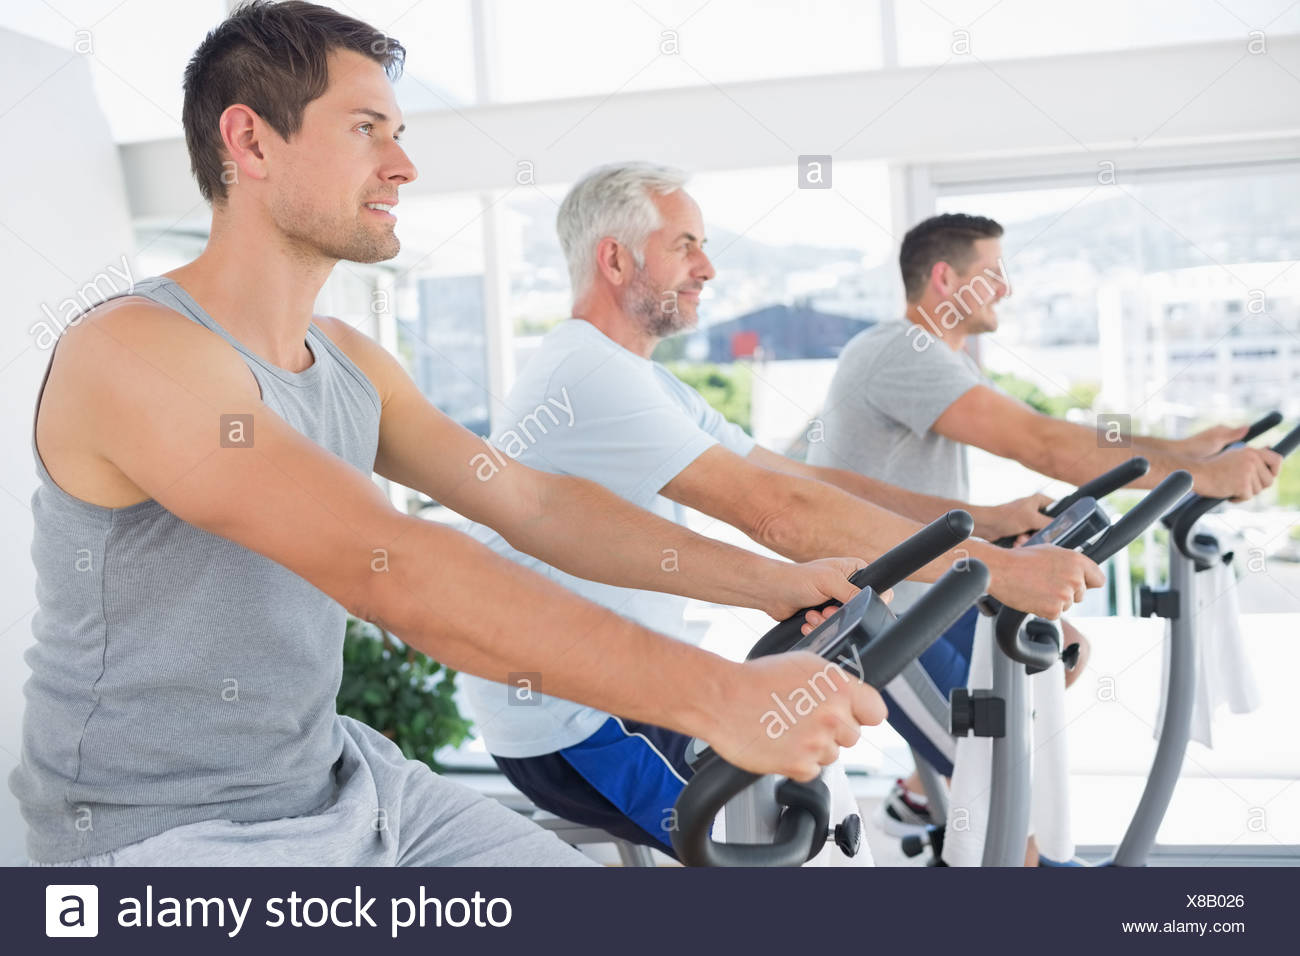 Men working out on exercise machines - Stock Image